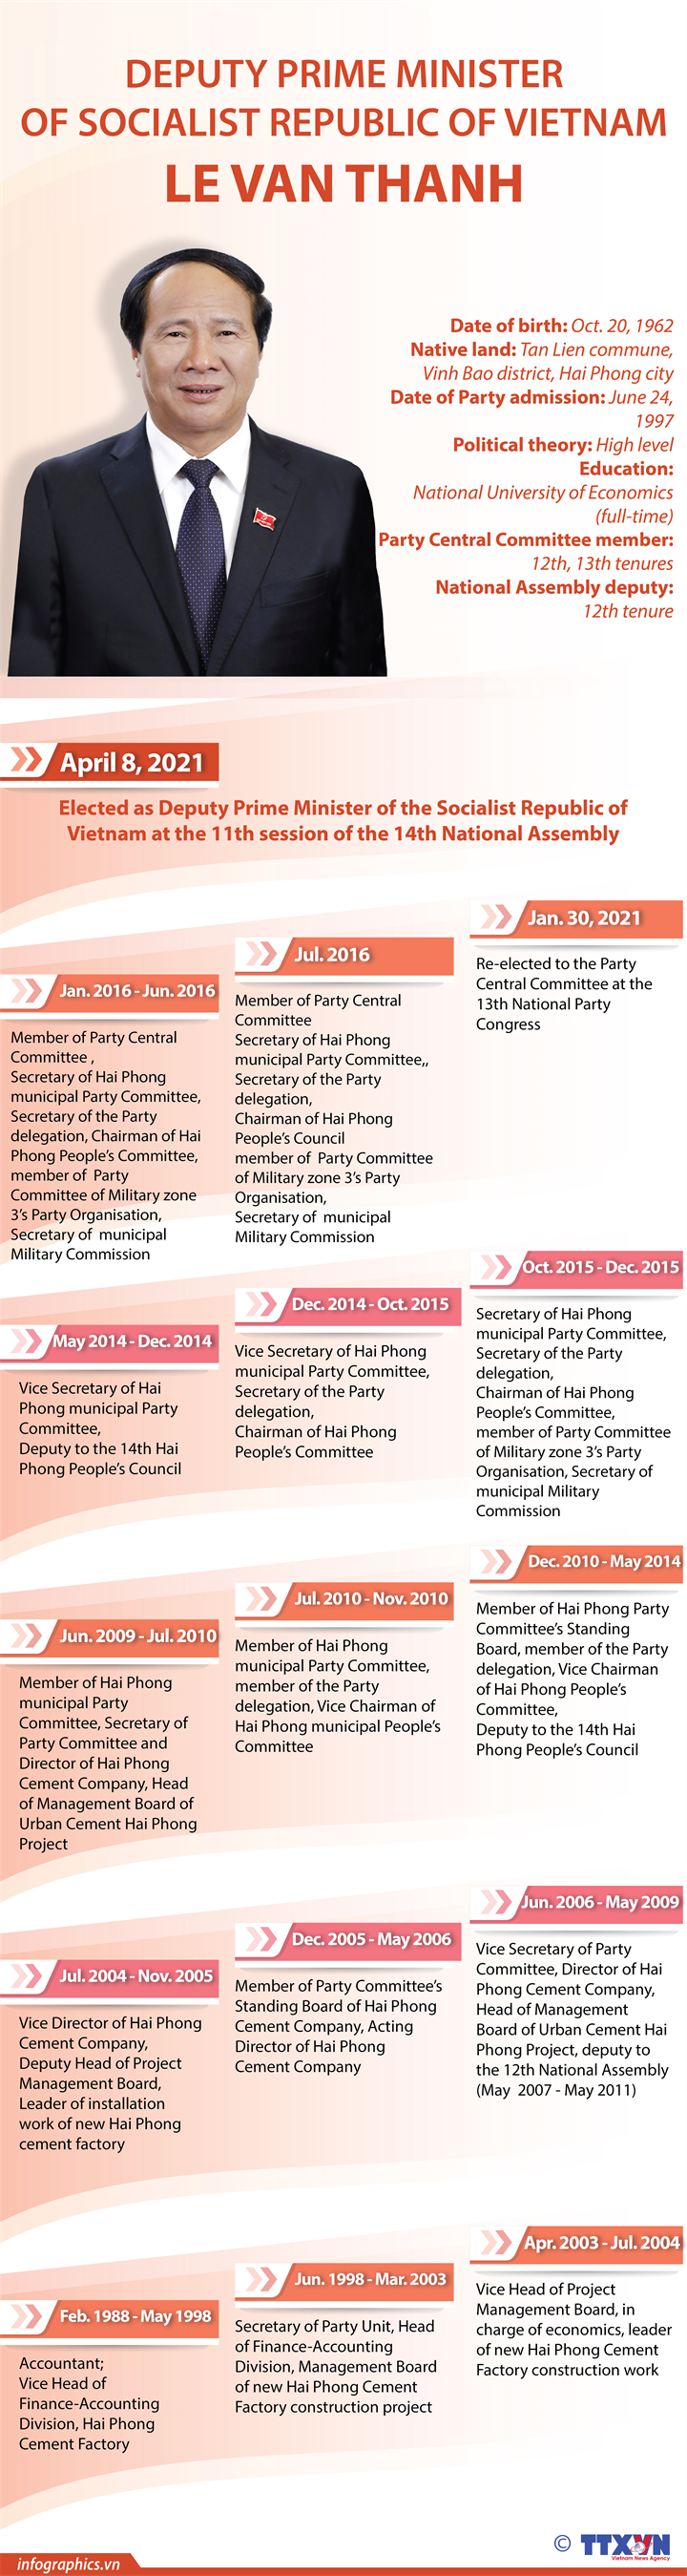 Deputy Prime Minister Le Van Thanh: Biography & Working History